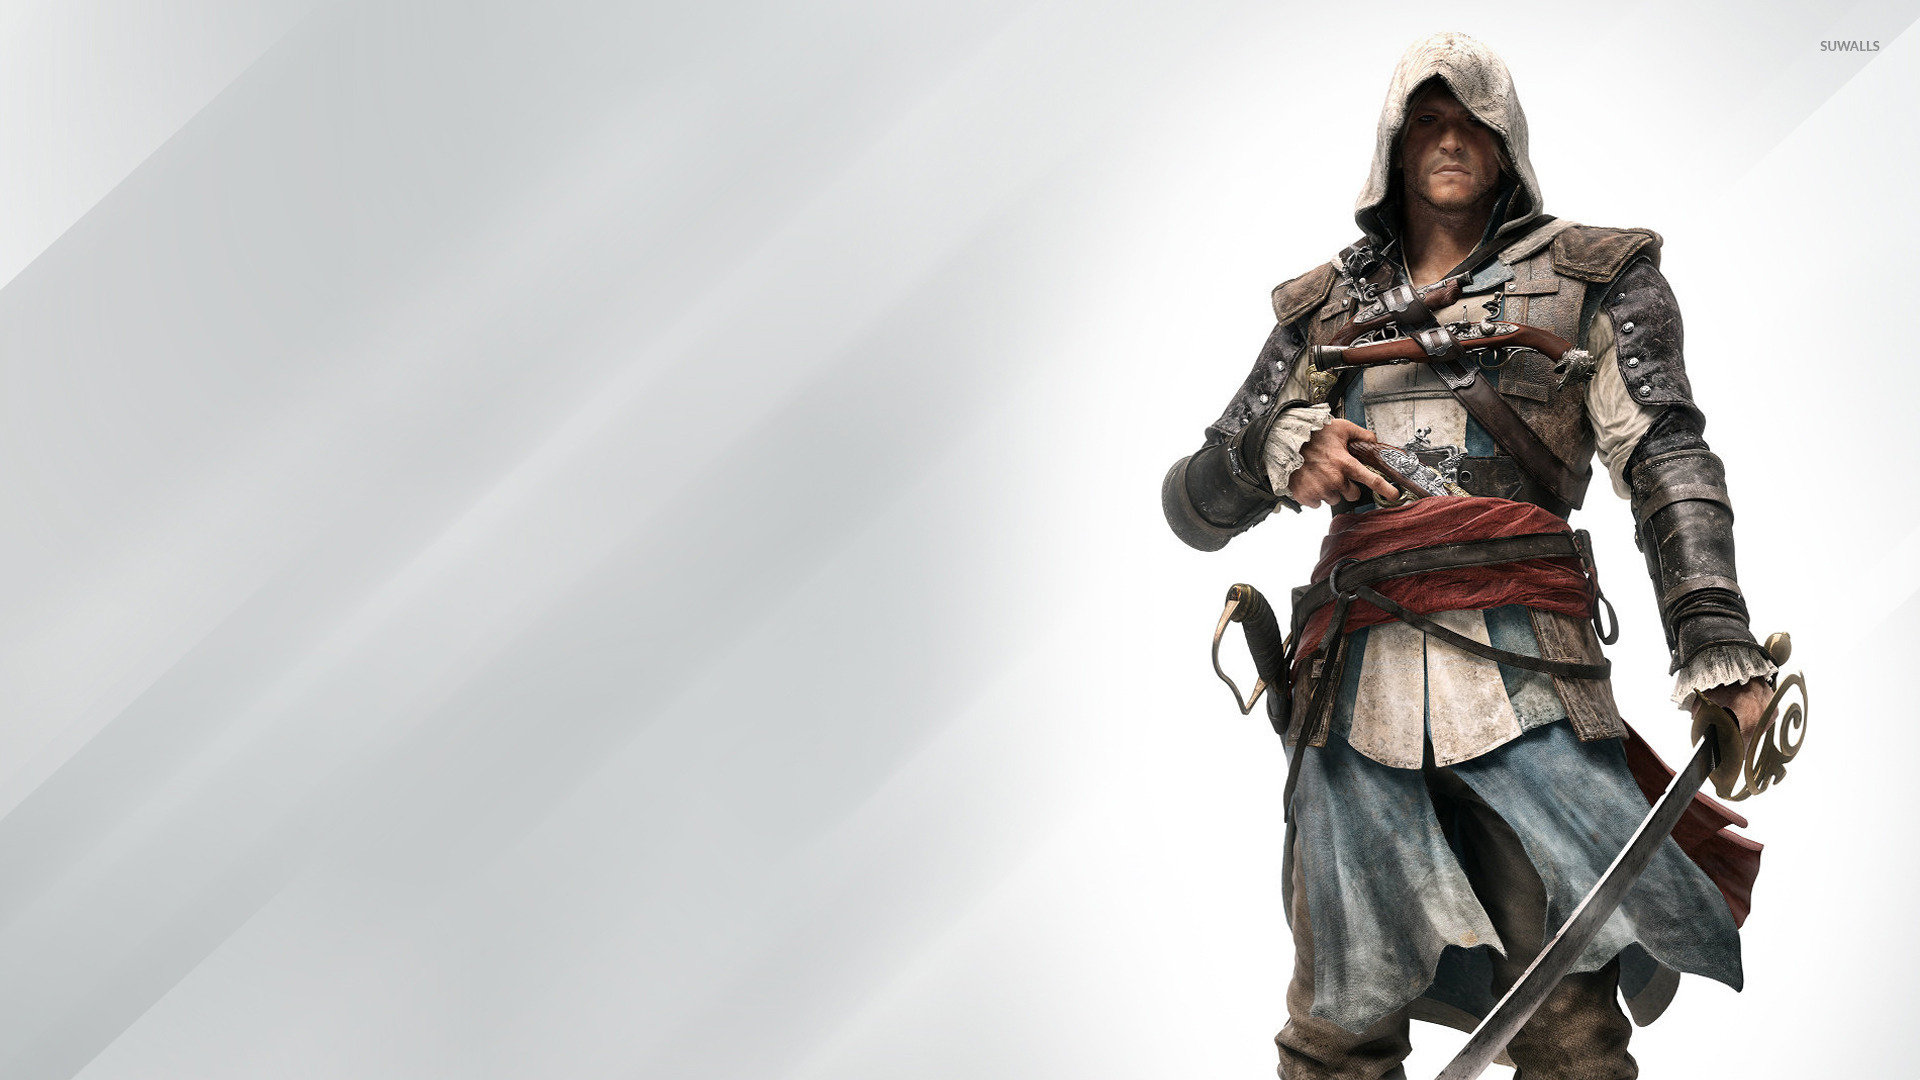 edward kenway assassins creed iv black flag 8 wallpaper